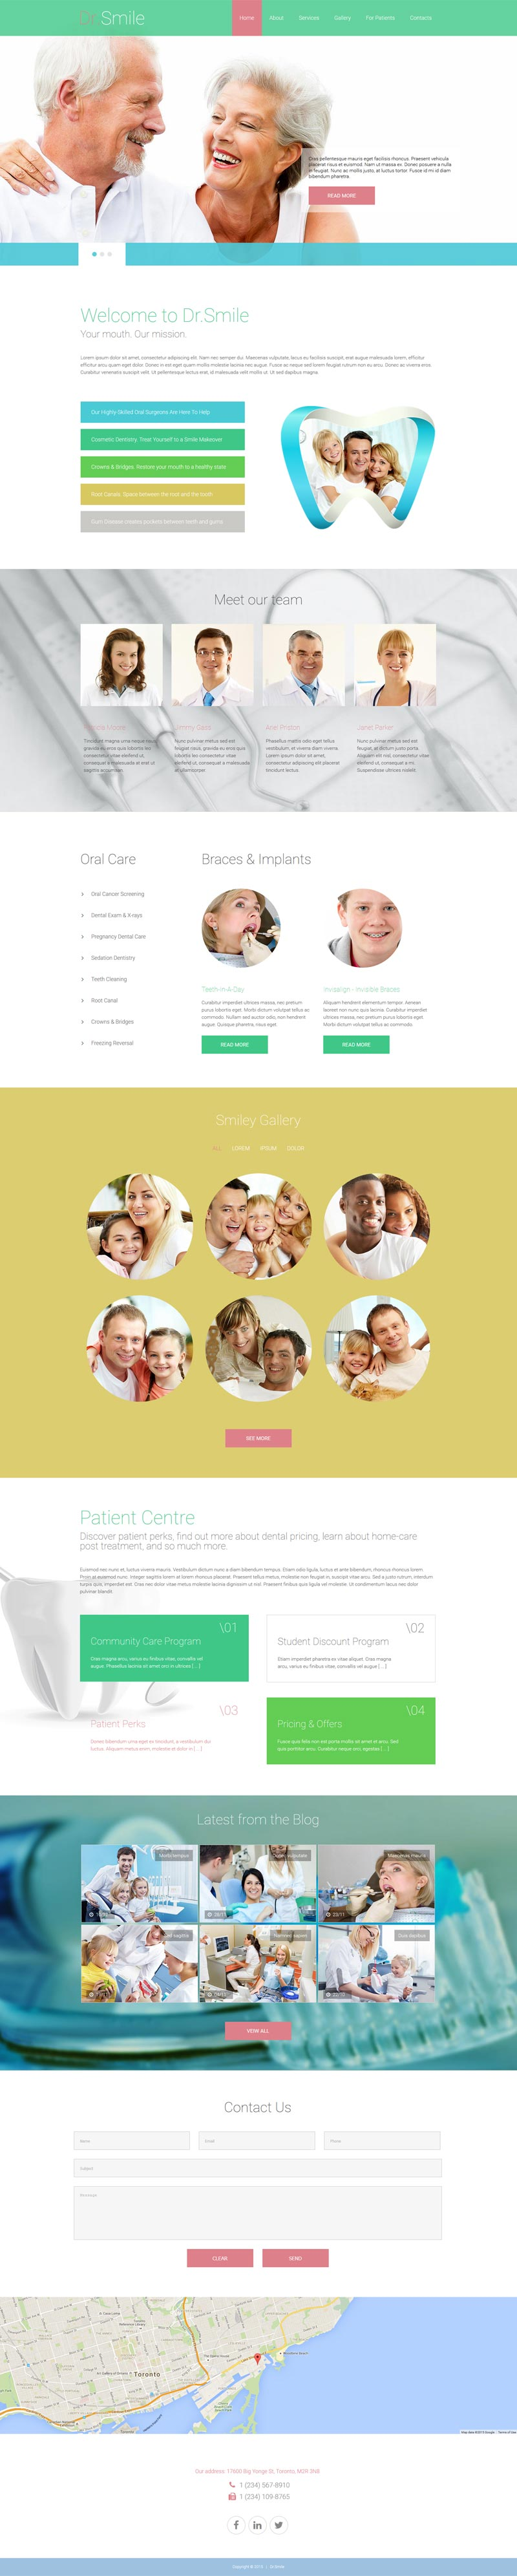 Doctor Smile Joomla! template